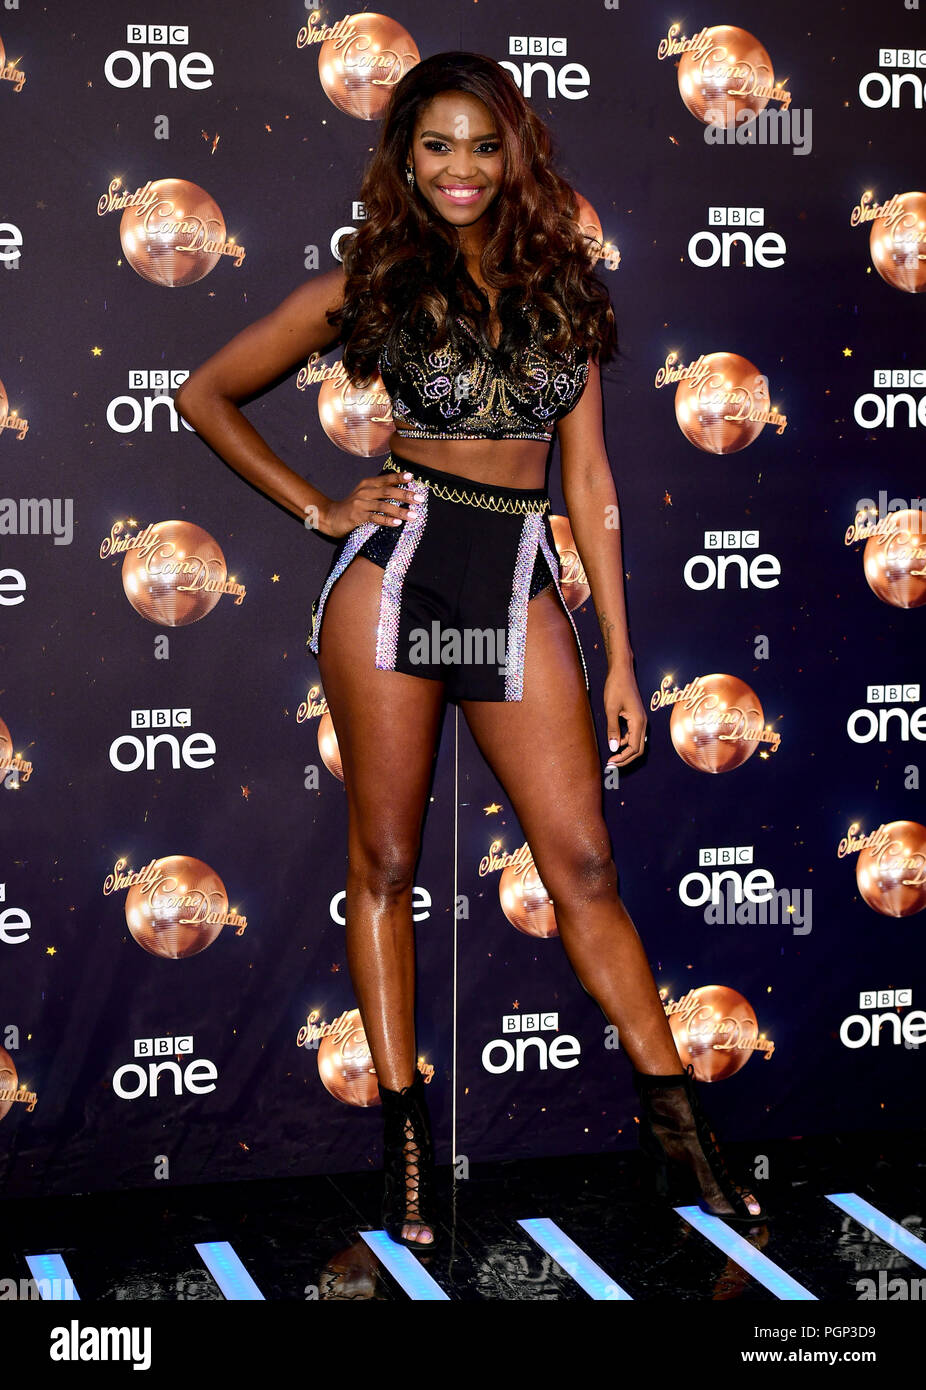 see through Photos Oti Mabuse naked photo 2017